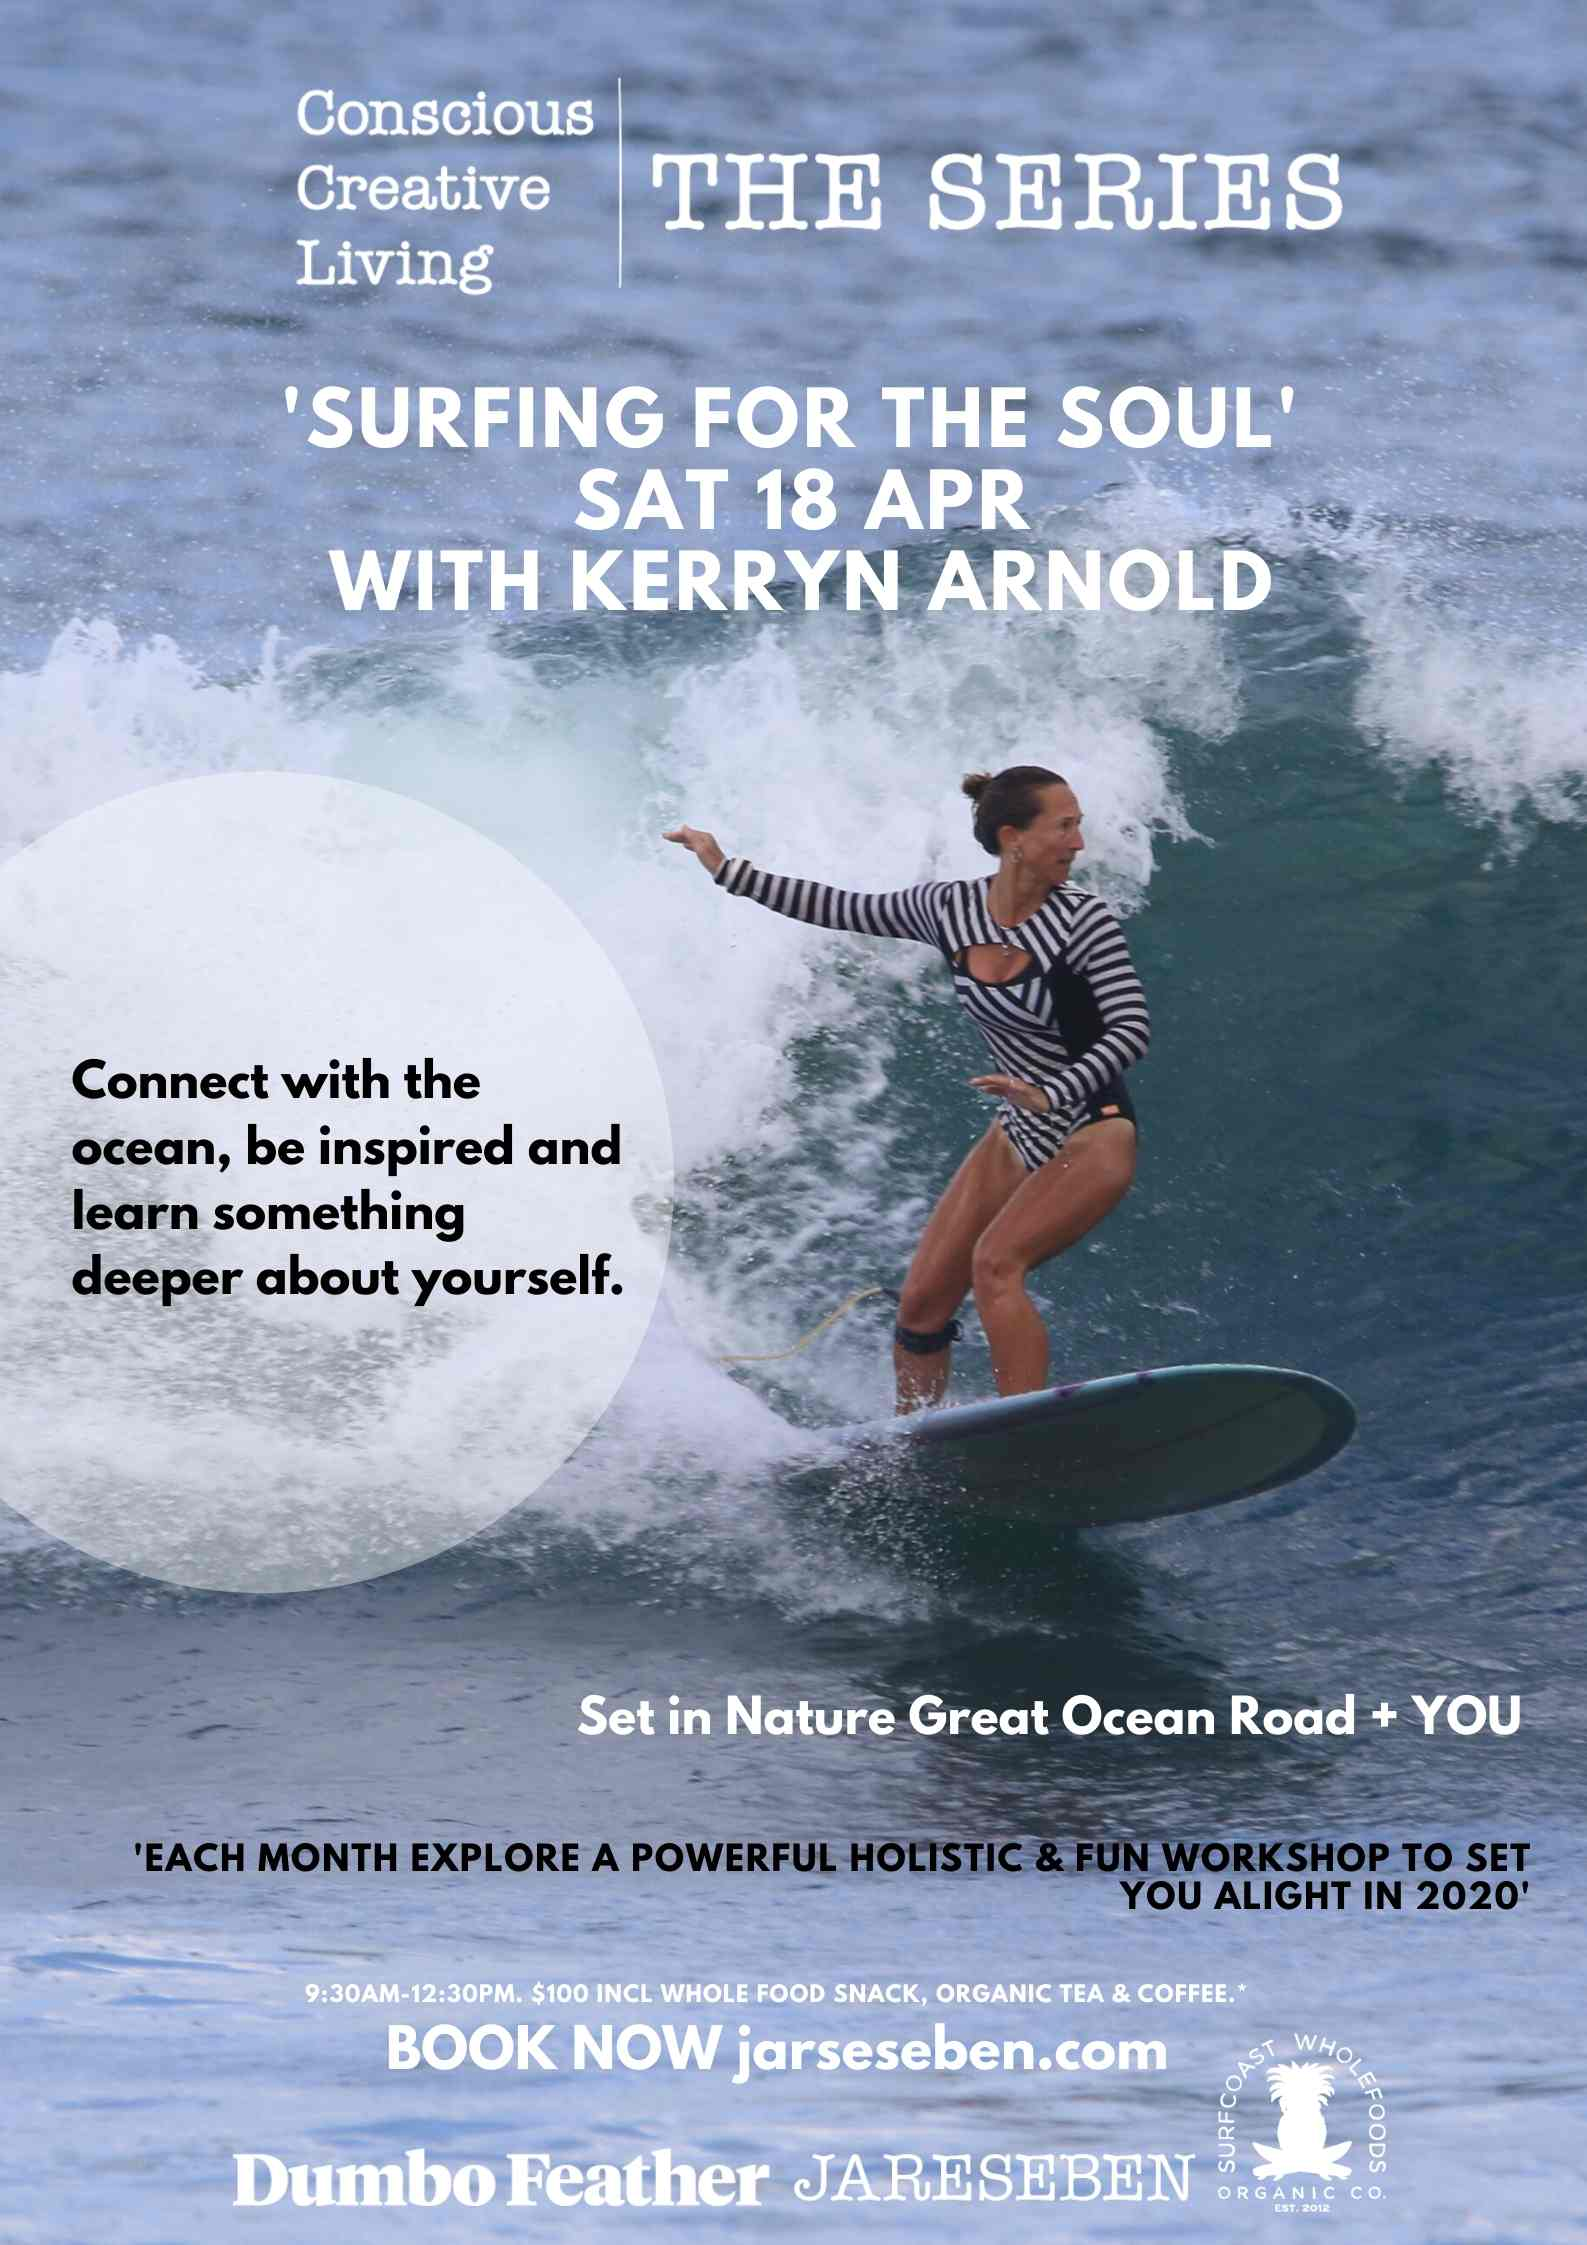 Surfing for the Soul